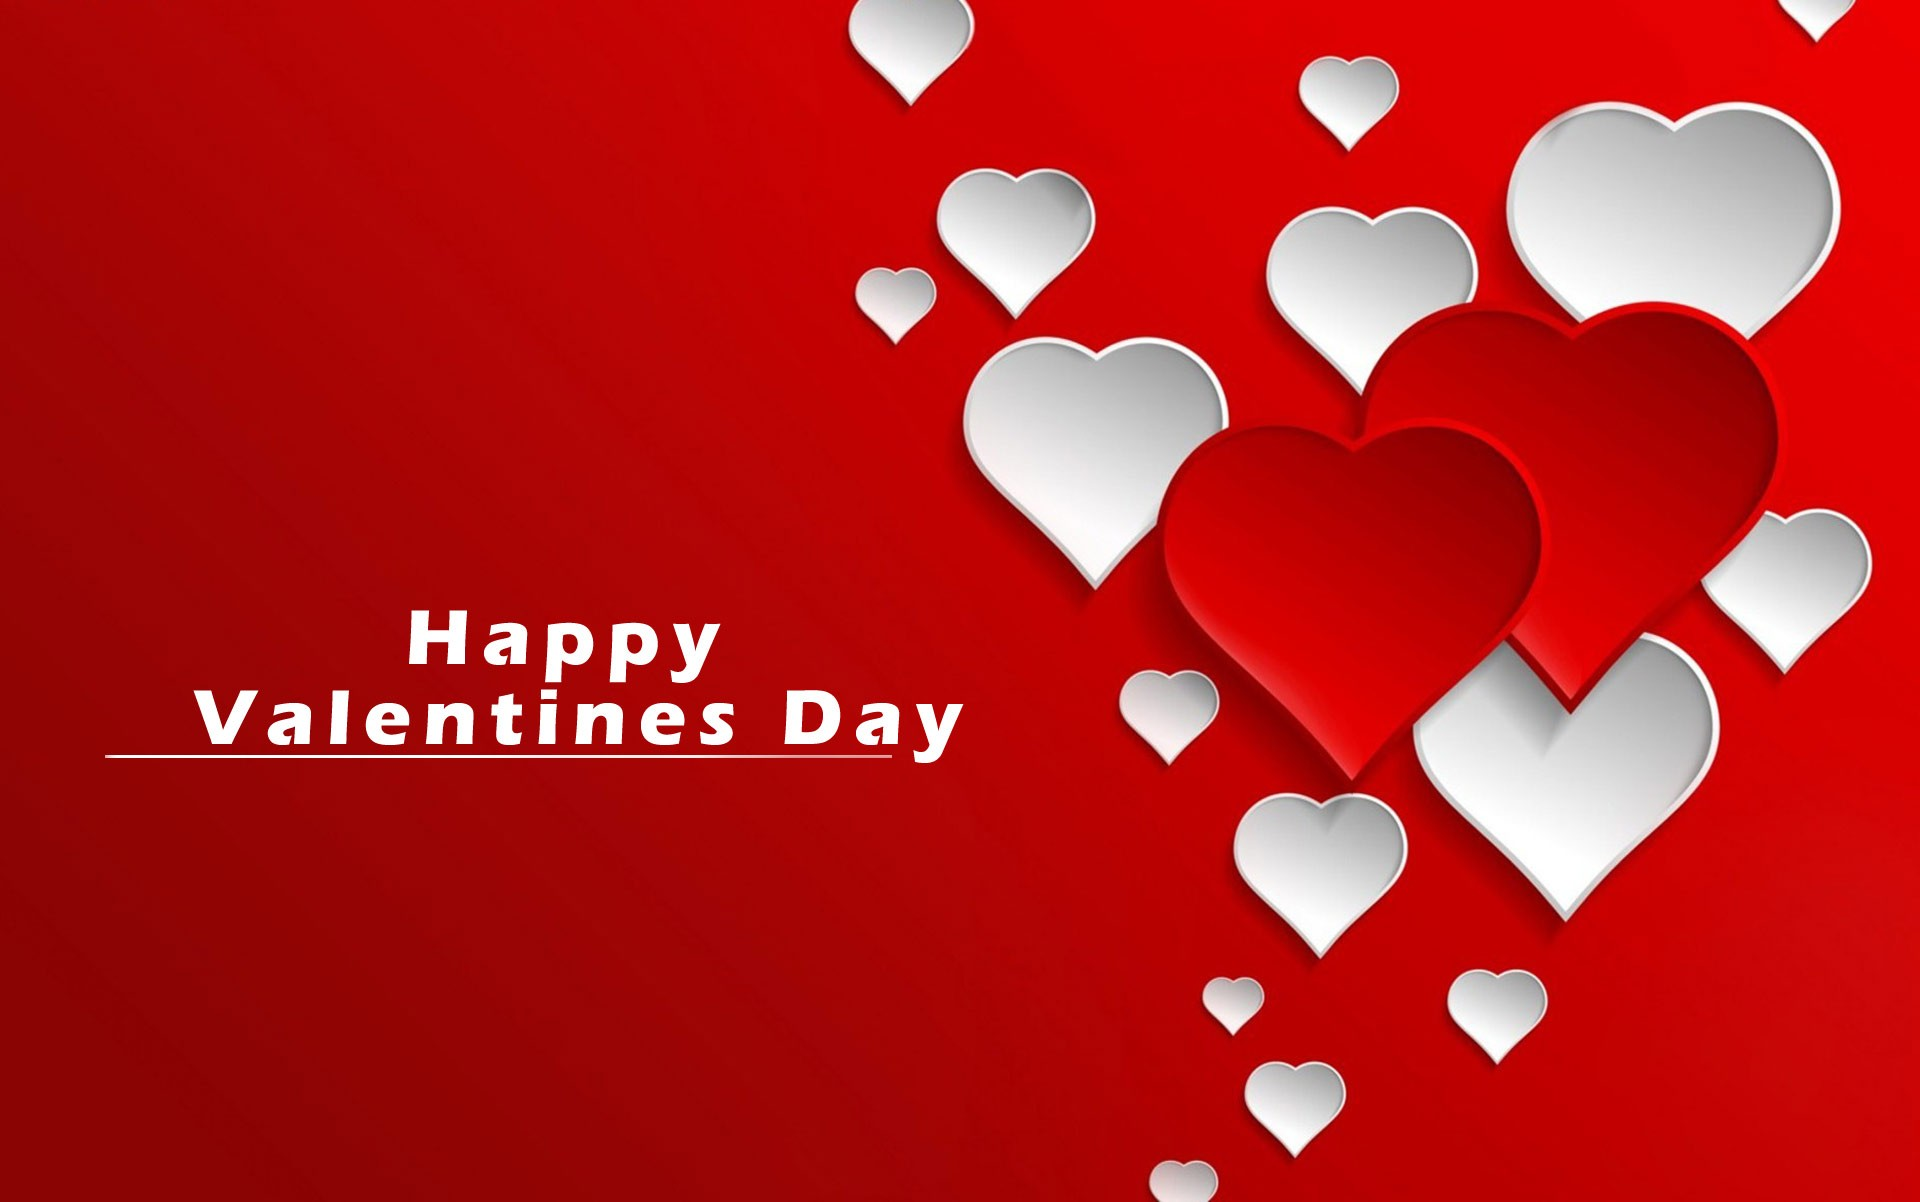 Happy Valentines Day 2018 Wallpapers Wallpapersafari